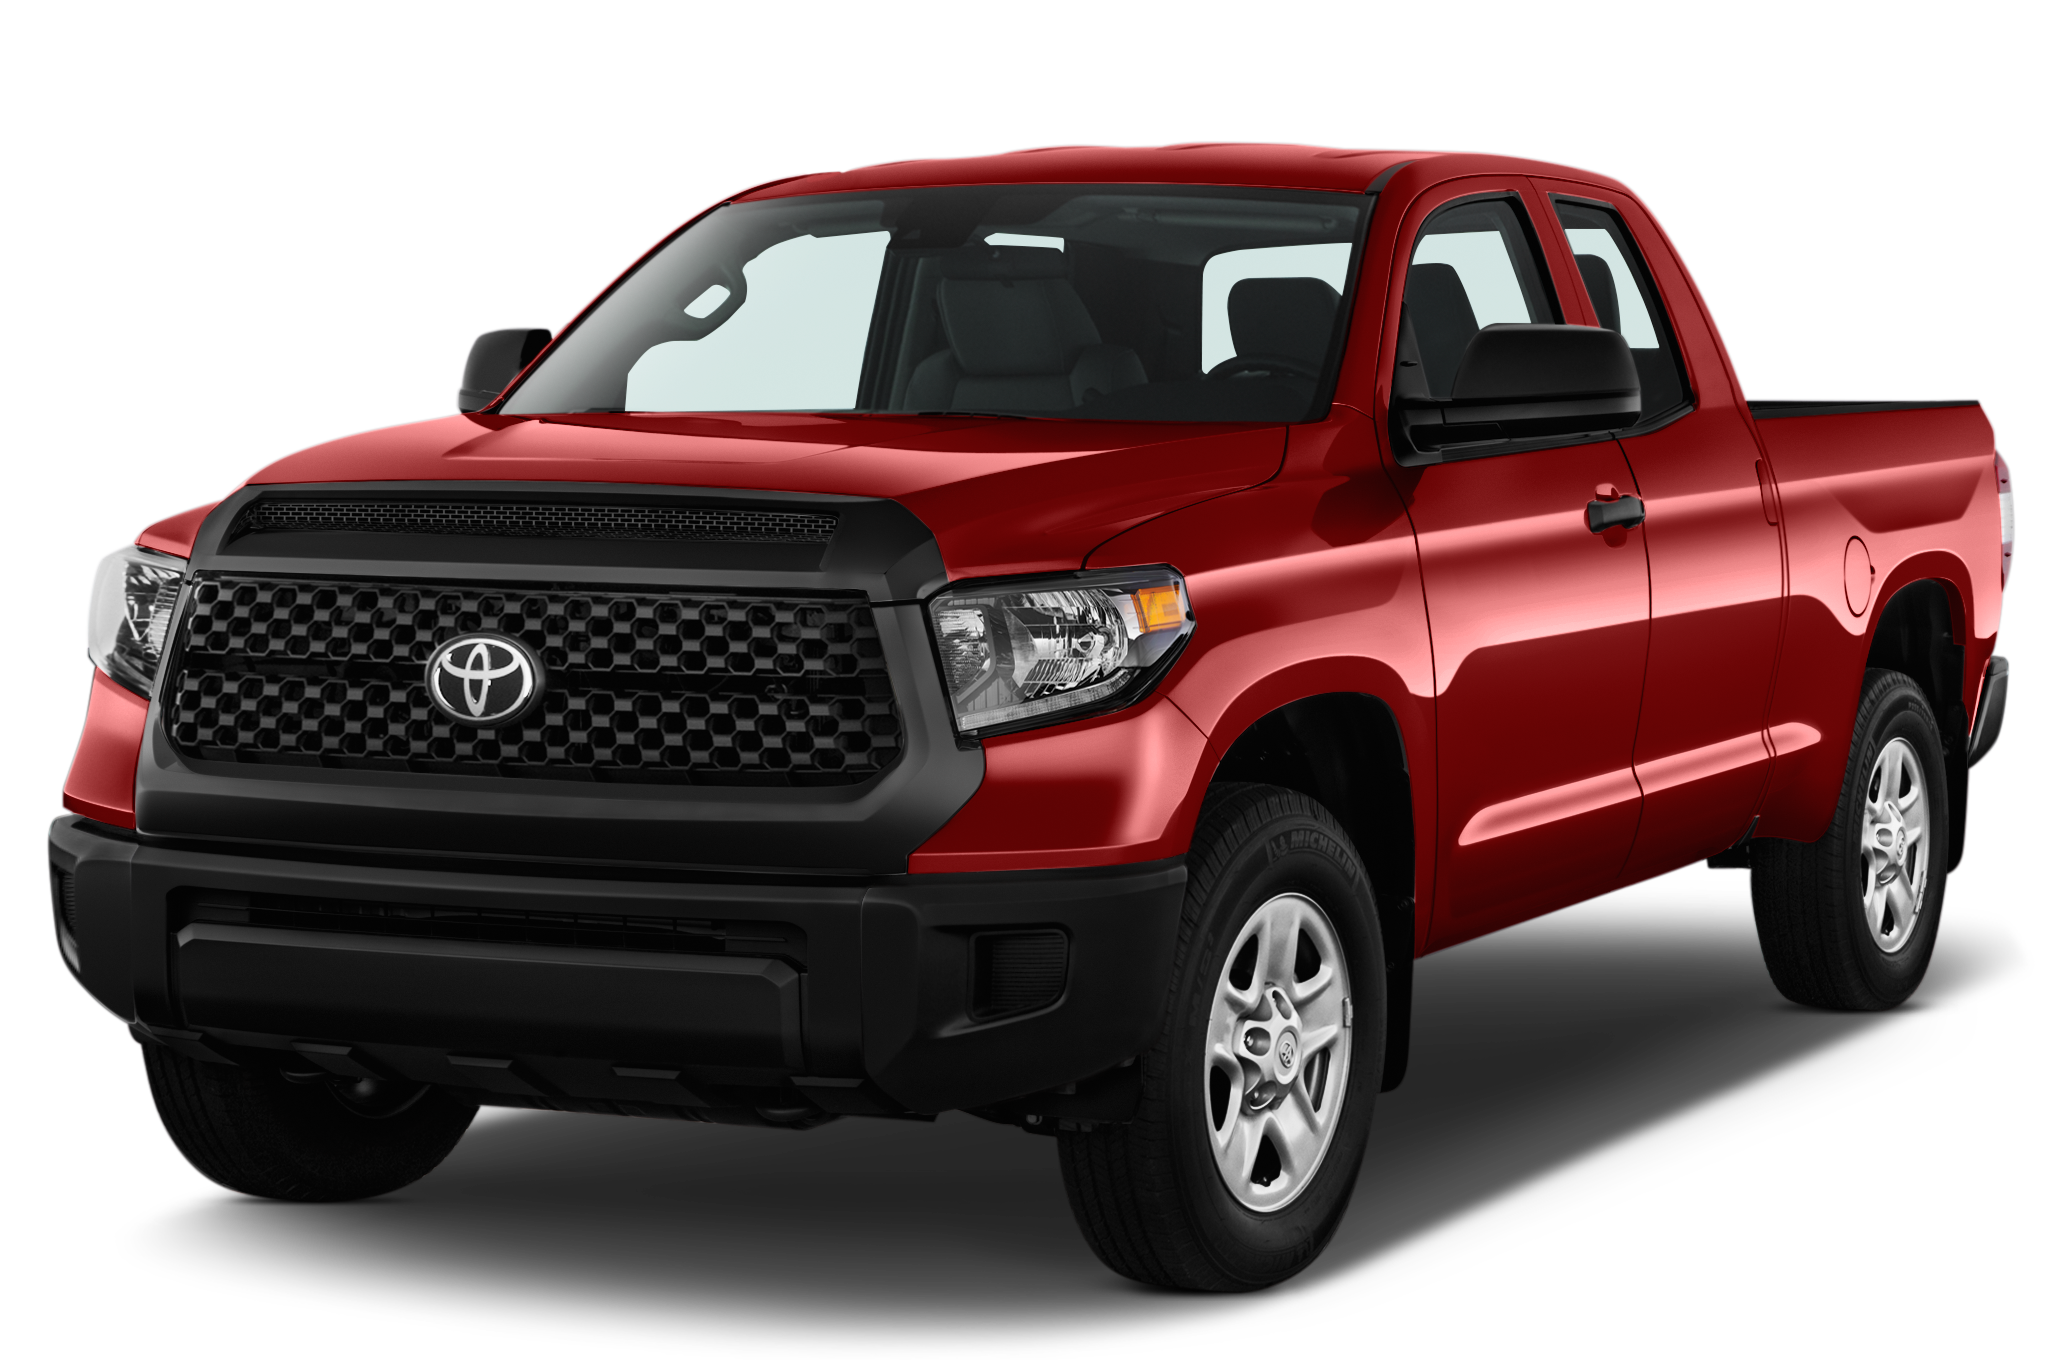 Toyota Tundra Malaysia >> 2019 Toyota Tundra SR 5.7L DC Long Bed Specs and Features - MSN Autos